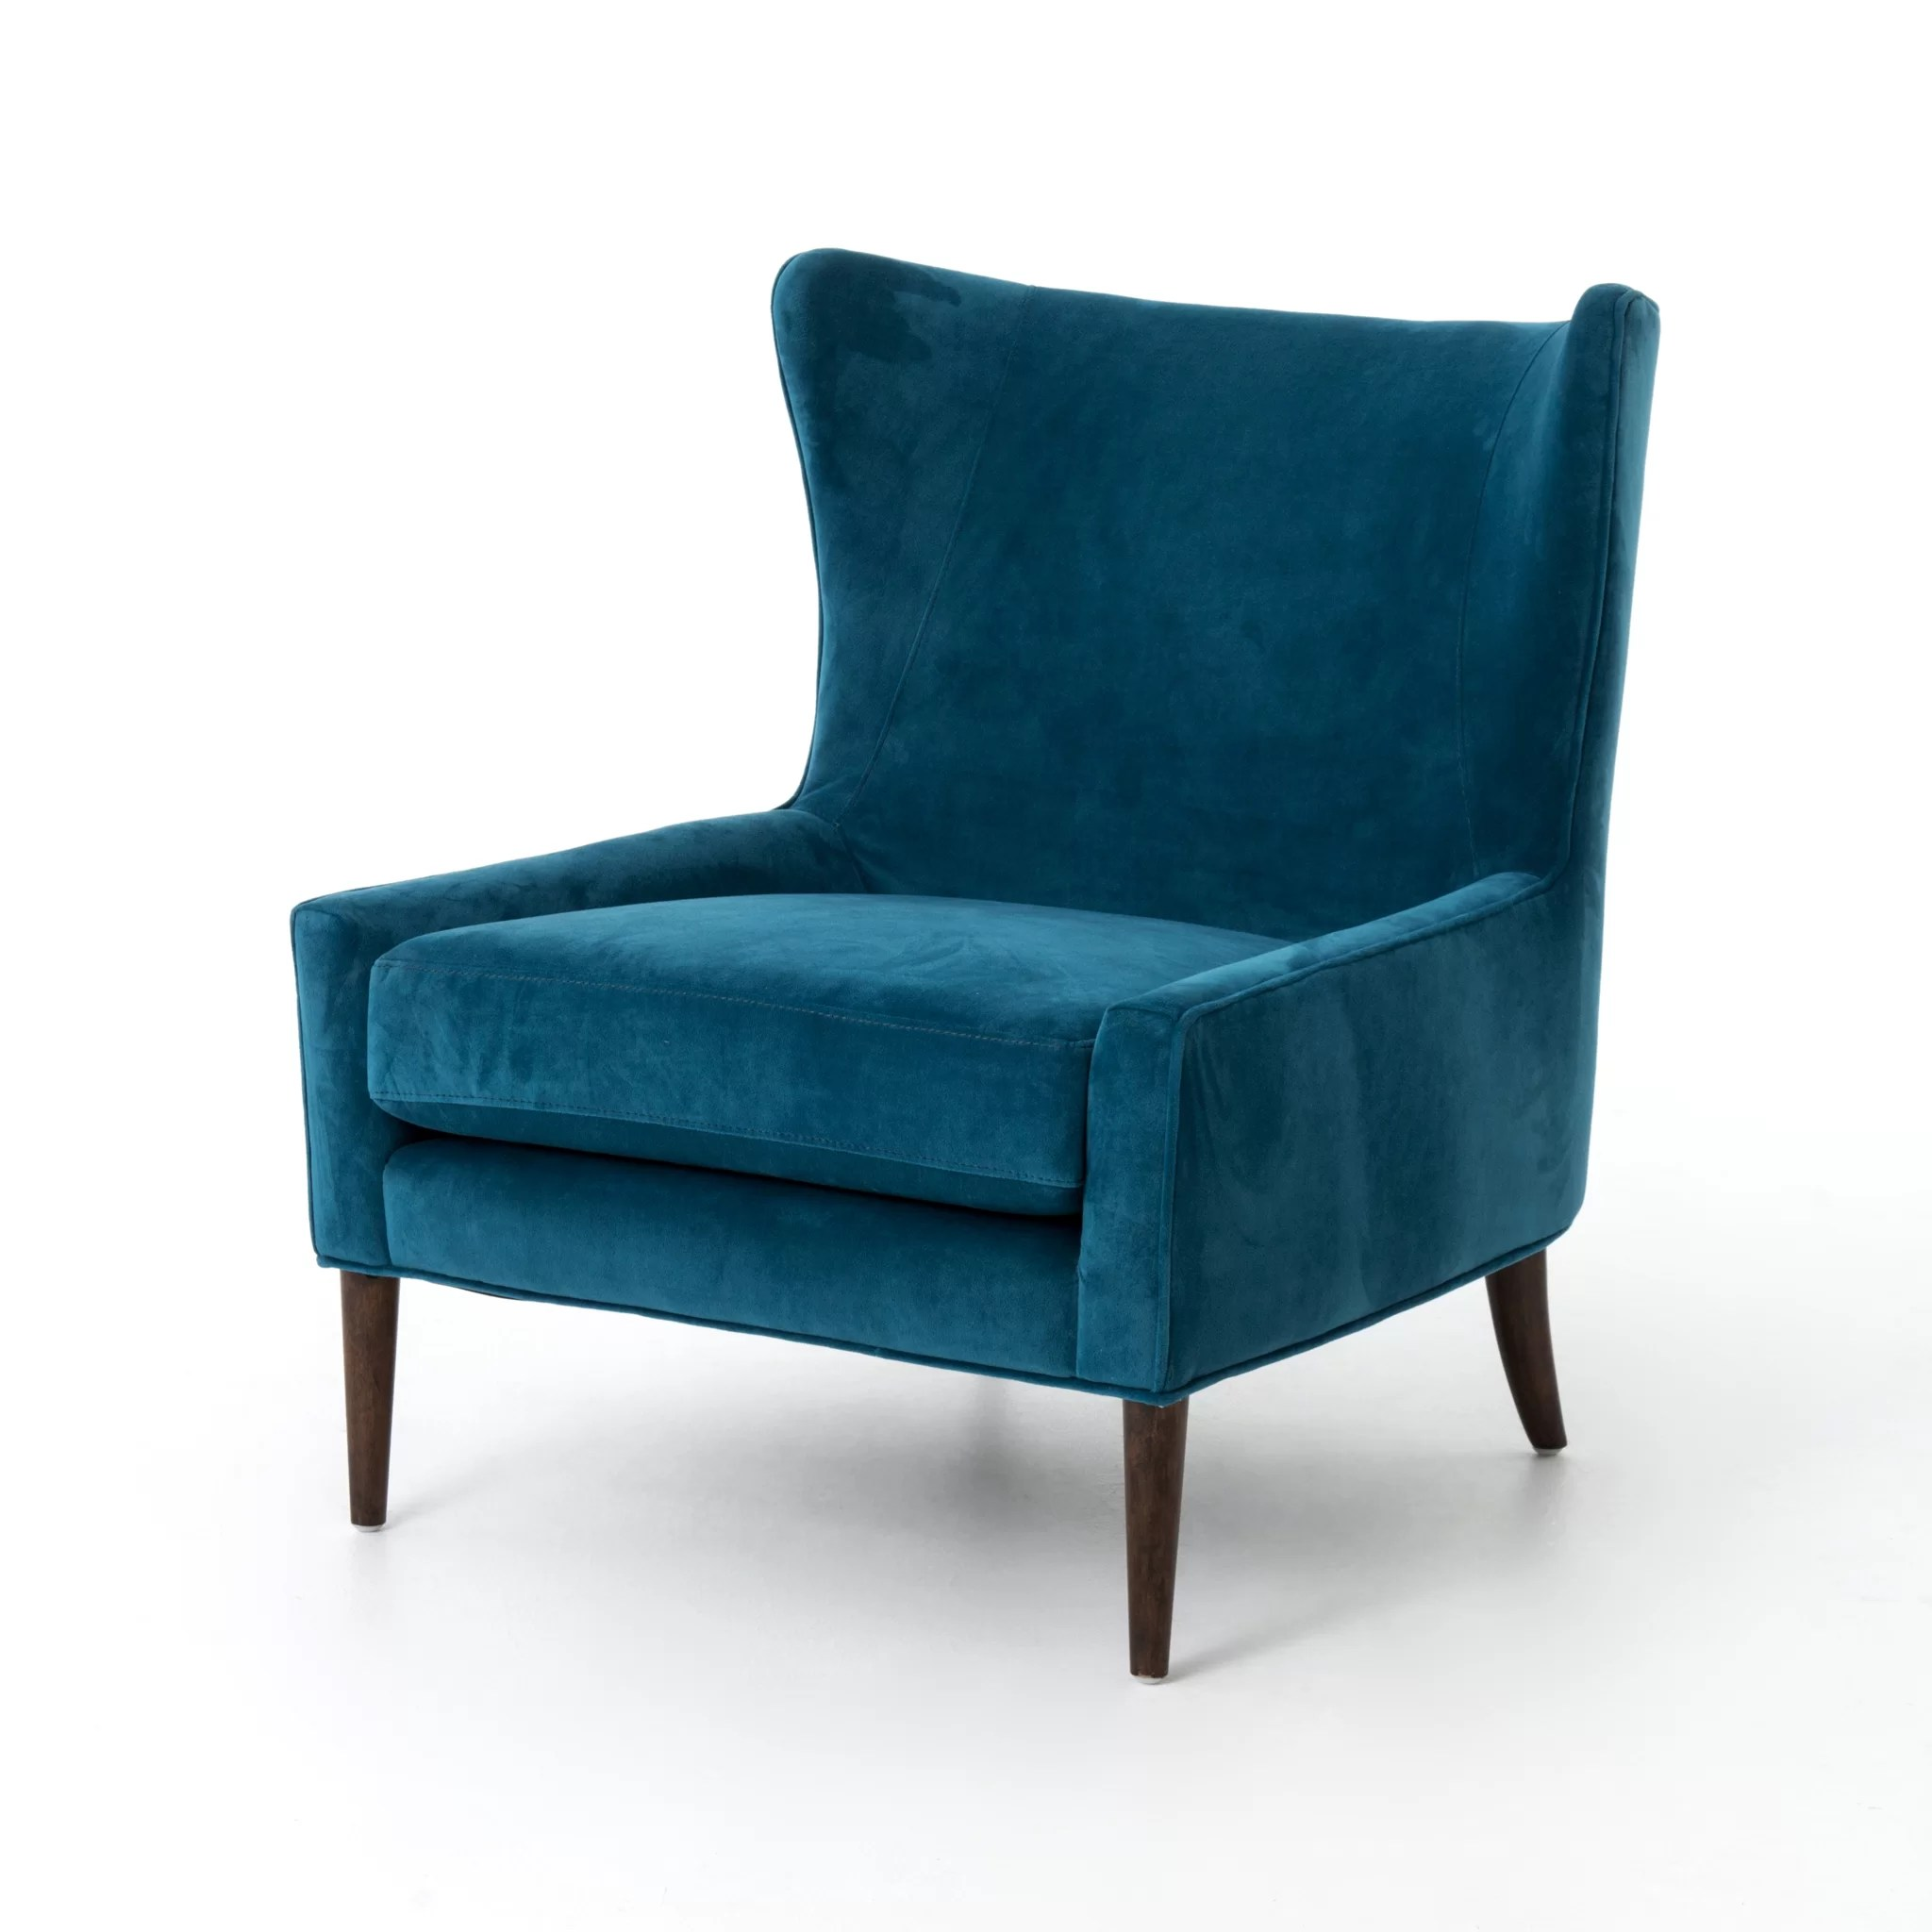 Blue Velvet Chair Design Tree Home Velvet Blue Marlow Wingback Chair